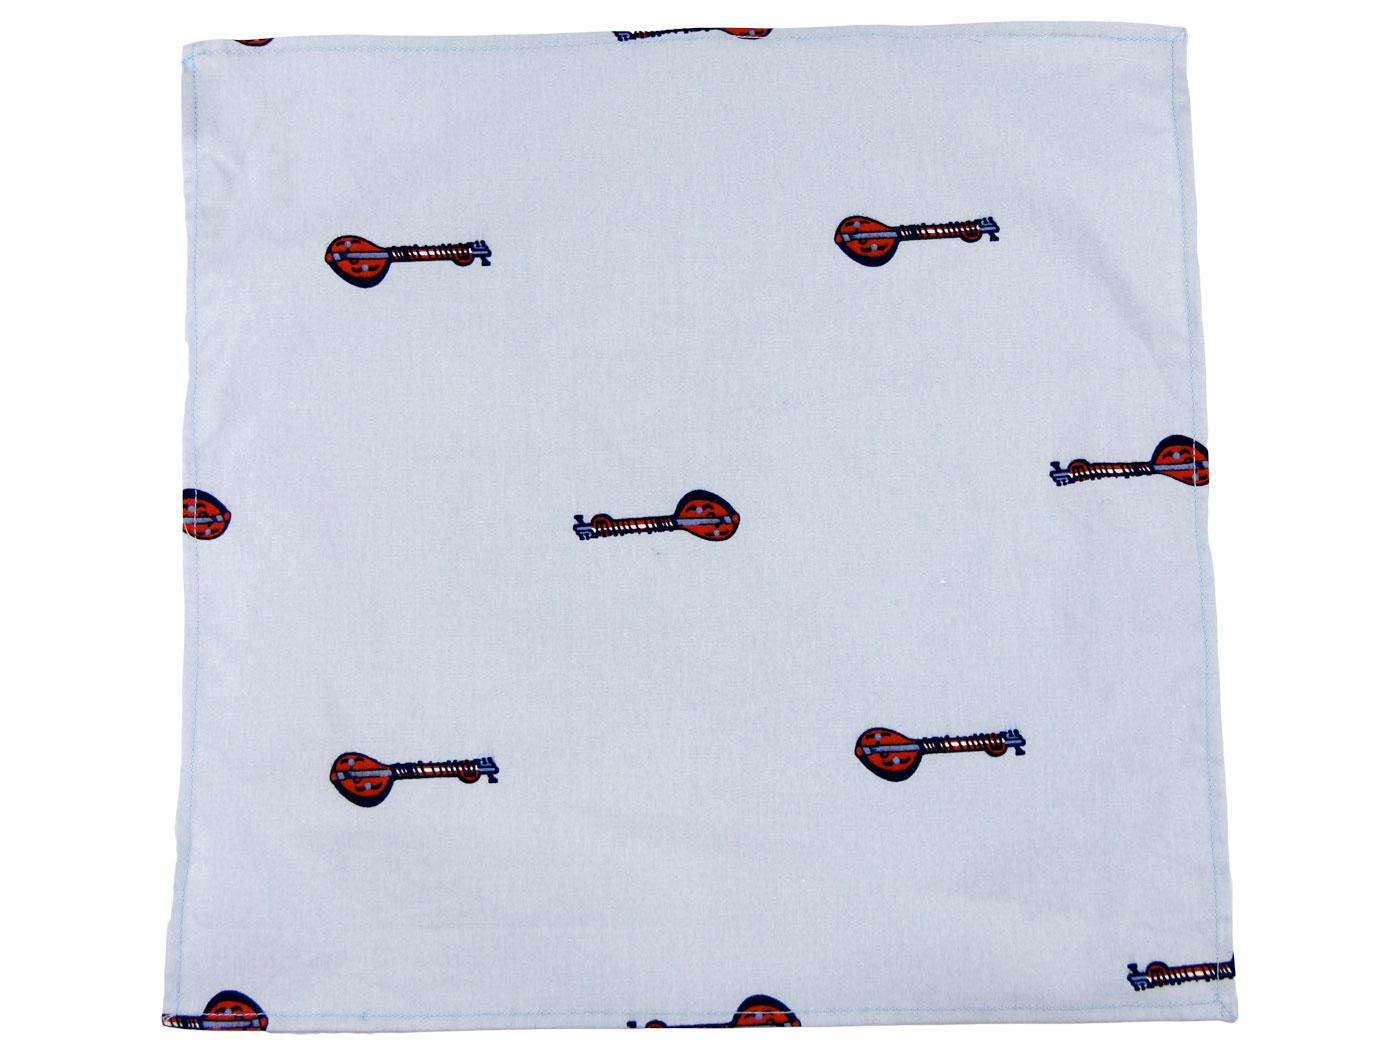 TukTuk Sky Sitar Handkerchief Pocket Square